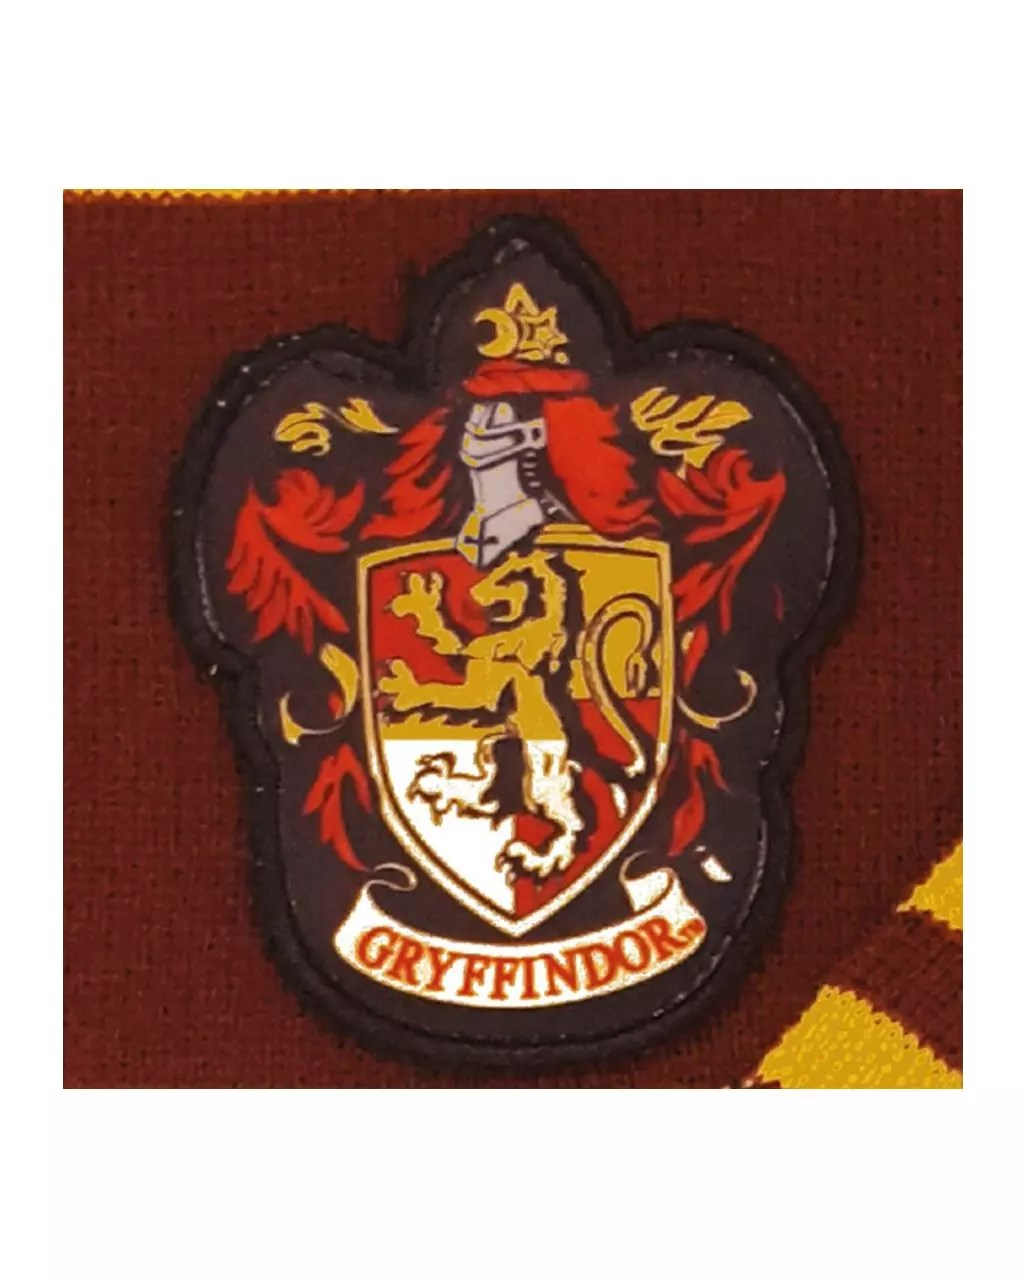 Harry Potter Welches Haus Gryffindor Haus Schal Rot Gelb Harry Potter